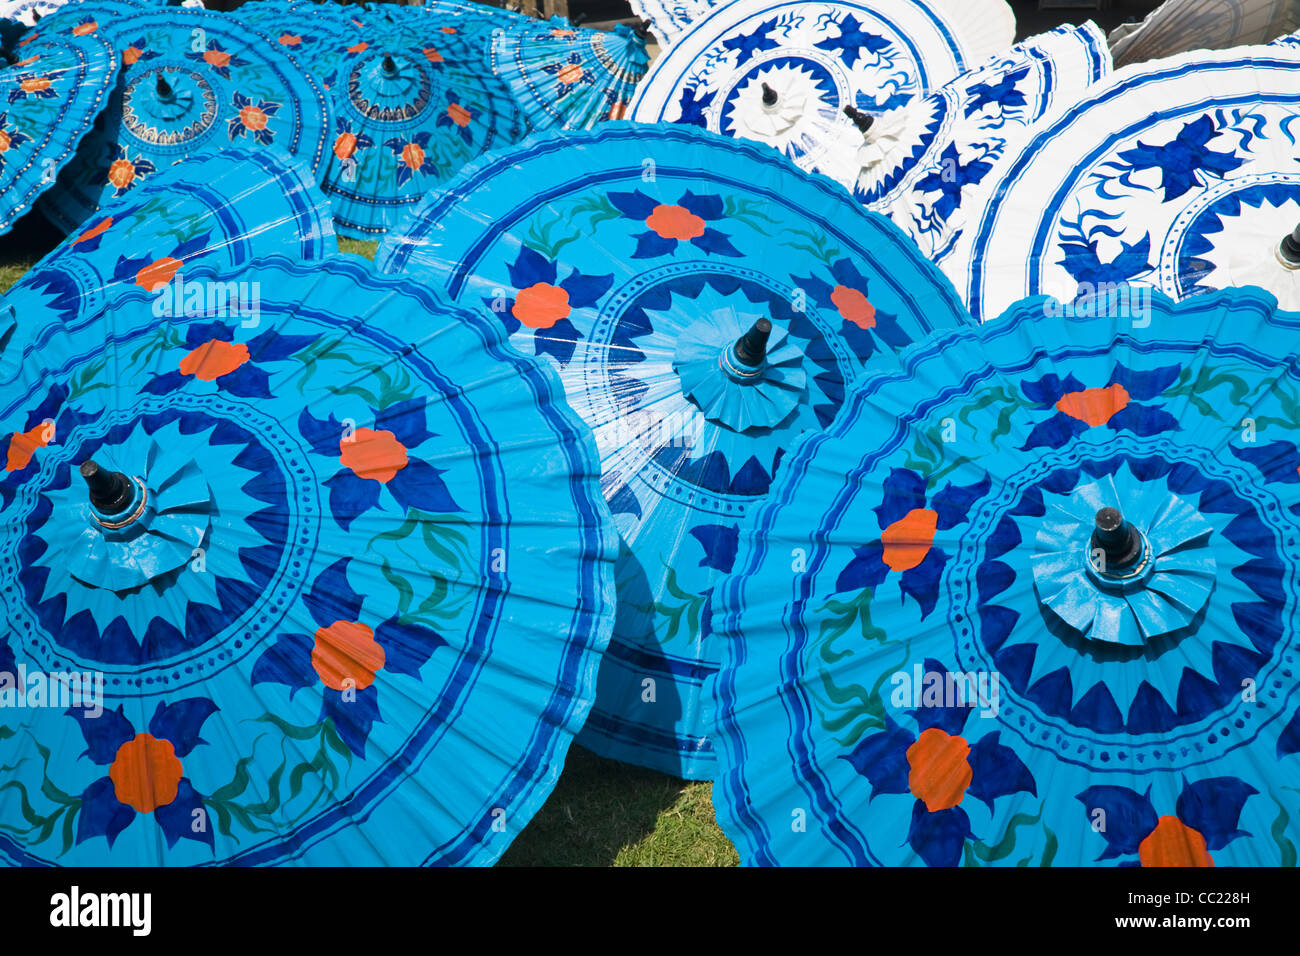 Traditional Thai parasols at Bo Sang, also known as the 'umbrella village'. Chiang Mai, Chiang Mai, Thailand - Stock Image